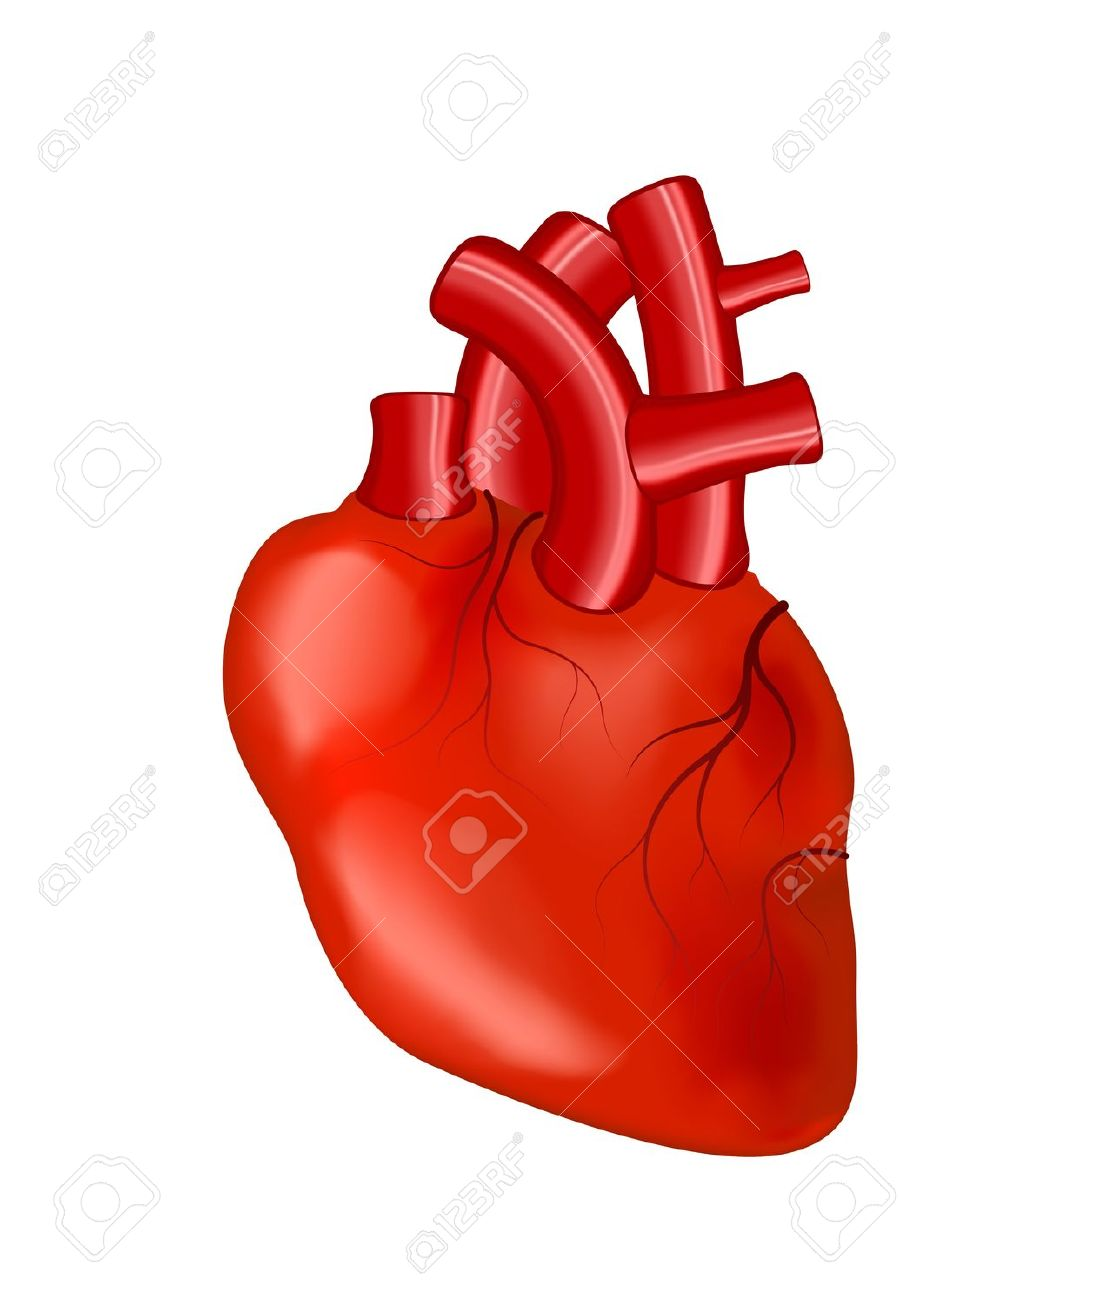 Human heart clipart 20 free Cliparts | Download images on ...